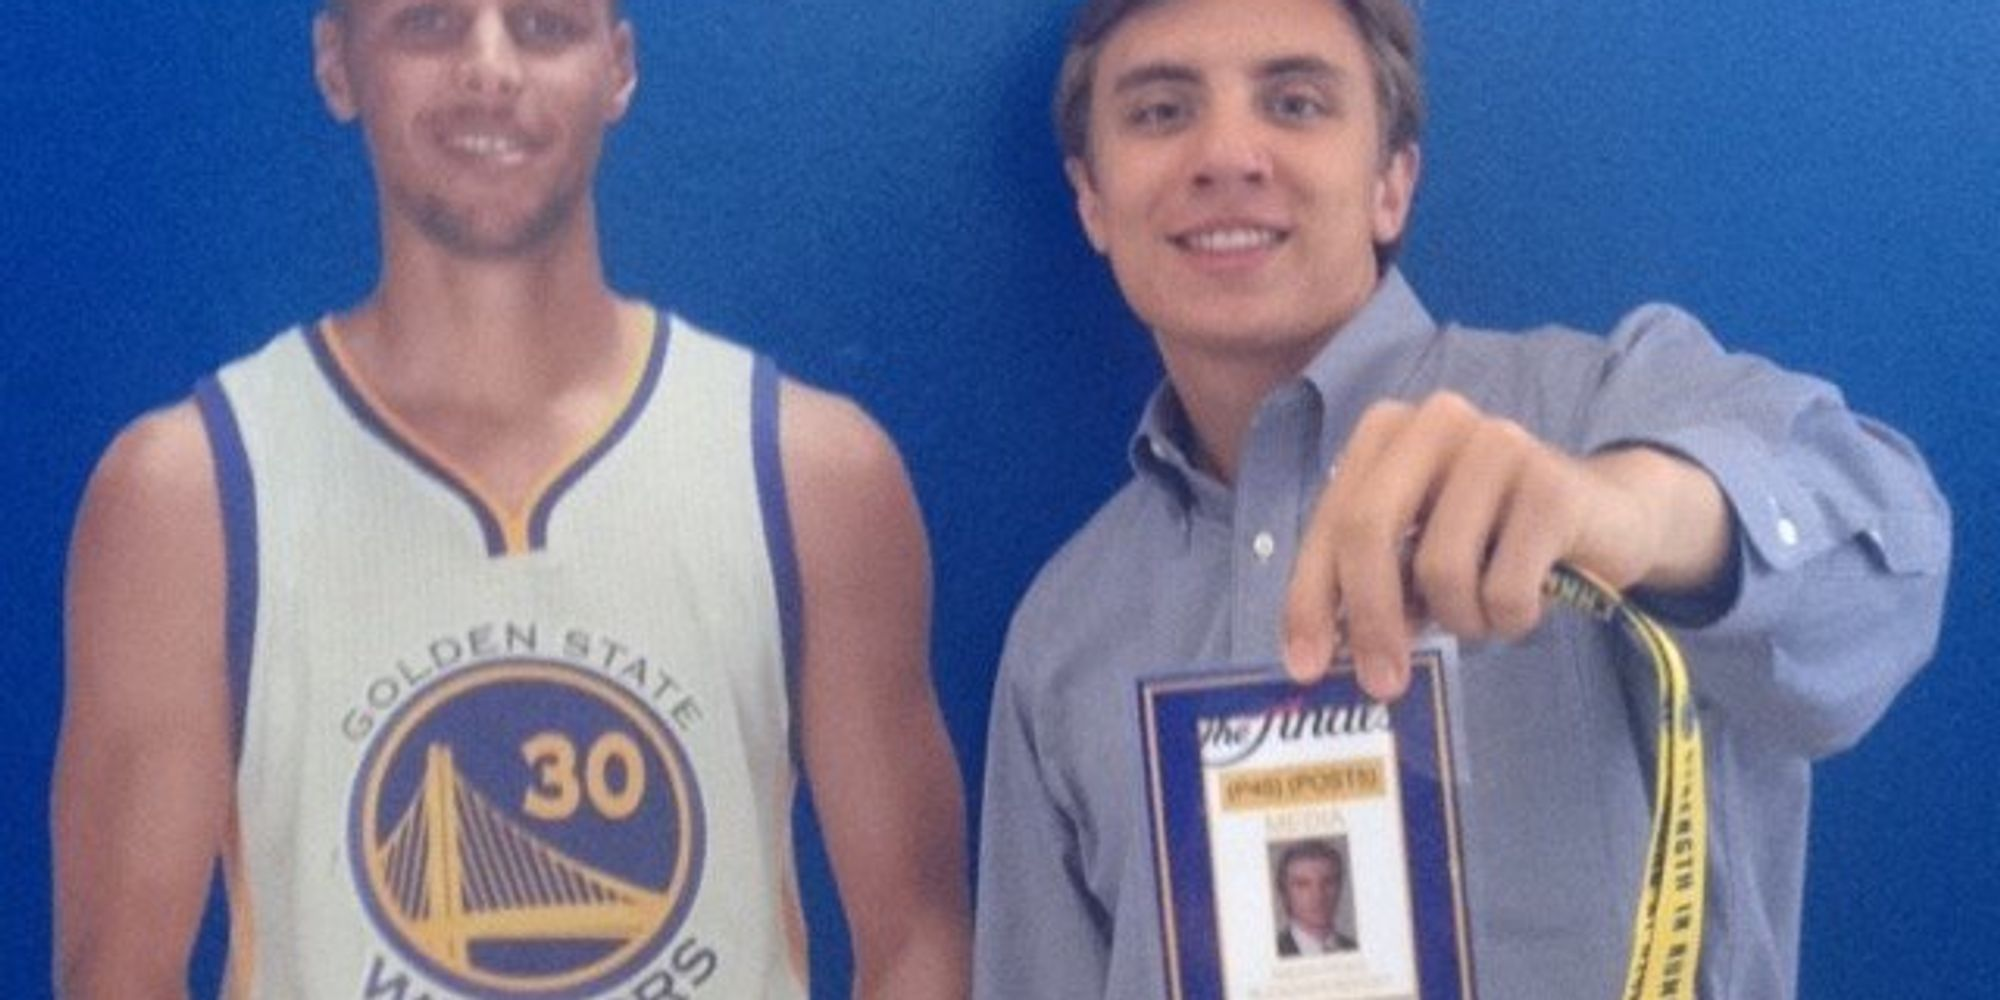 This Kid Snuck Into Game 7 Of The NBA Finals With A Fake Press Pass | The Huffington Post